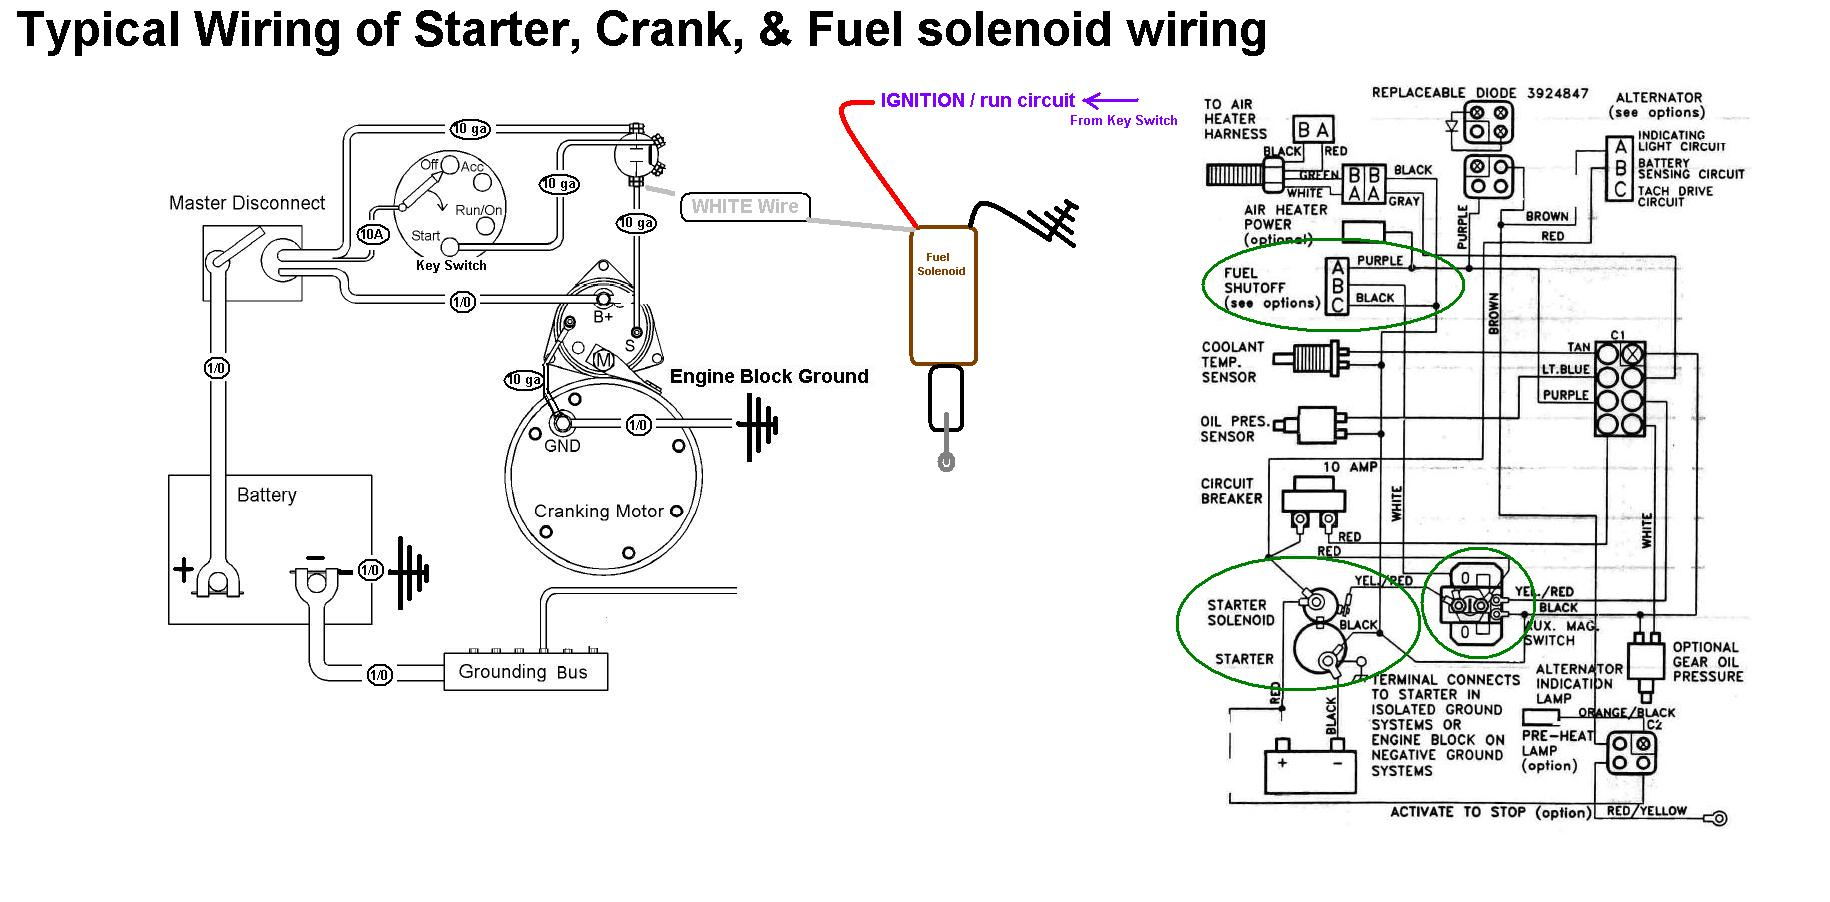 Dc Motor Starter Relay Wiring Diagram Trusted 12 Volt Solenoid Switch Cummins 24v Diy Enthusiasts Diagrams U2022 Magnetic